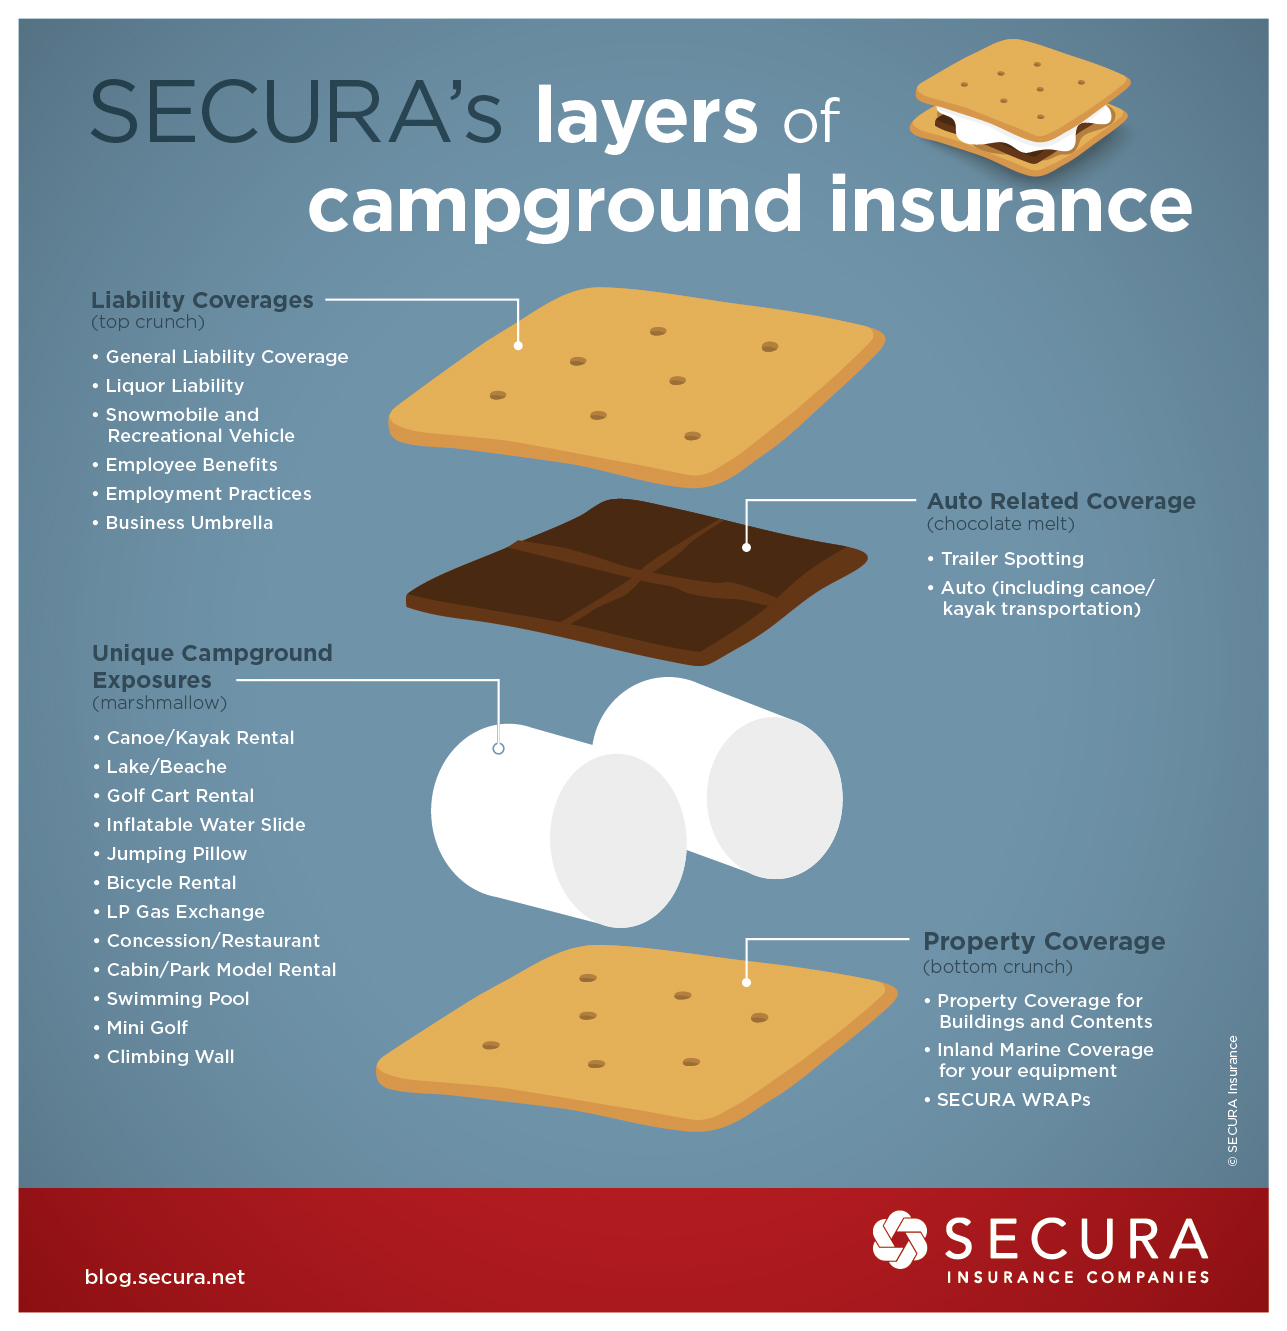 Secura Insurance Campground Insurance